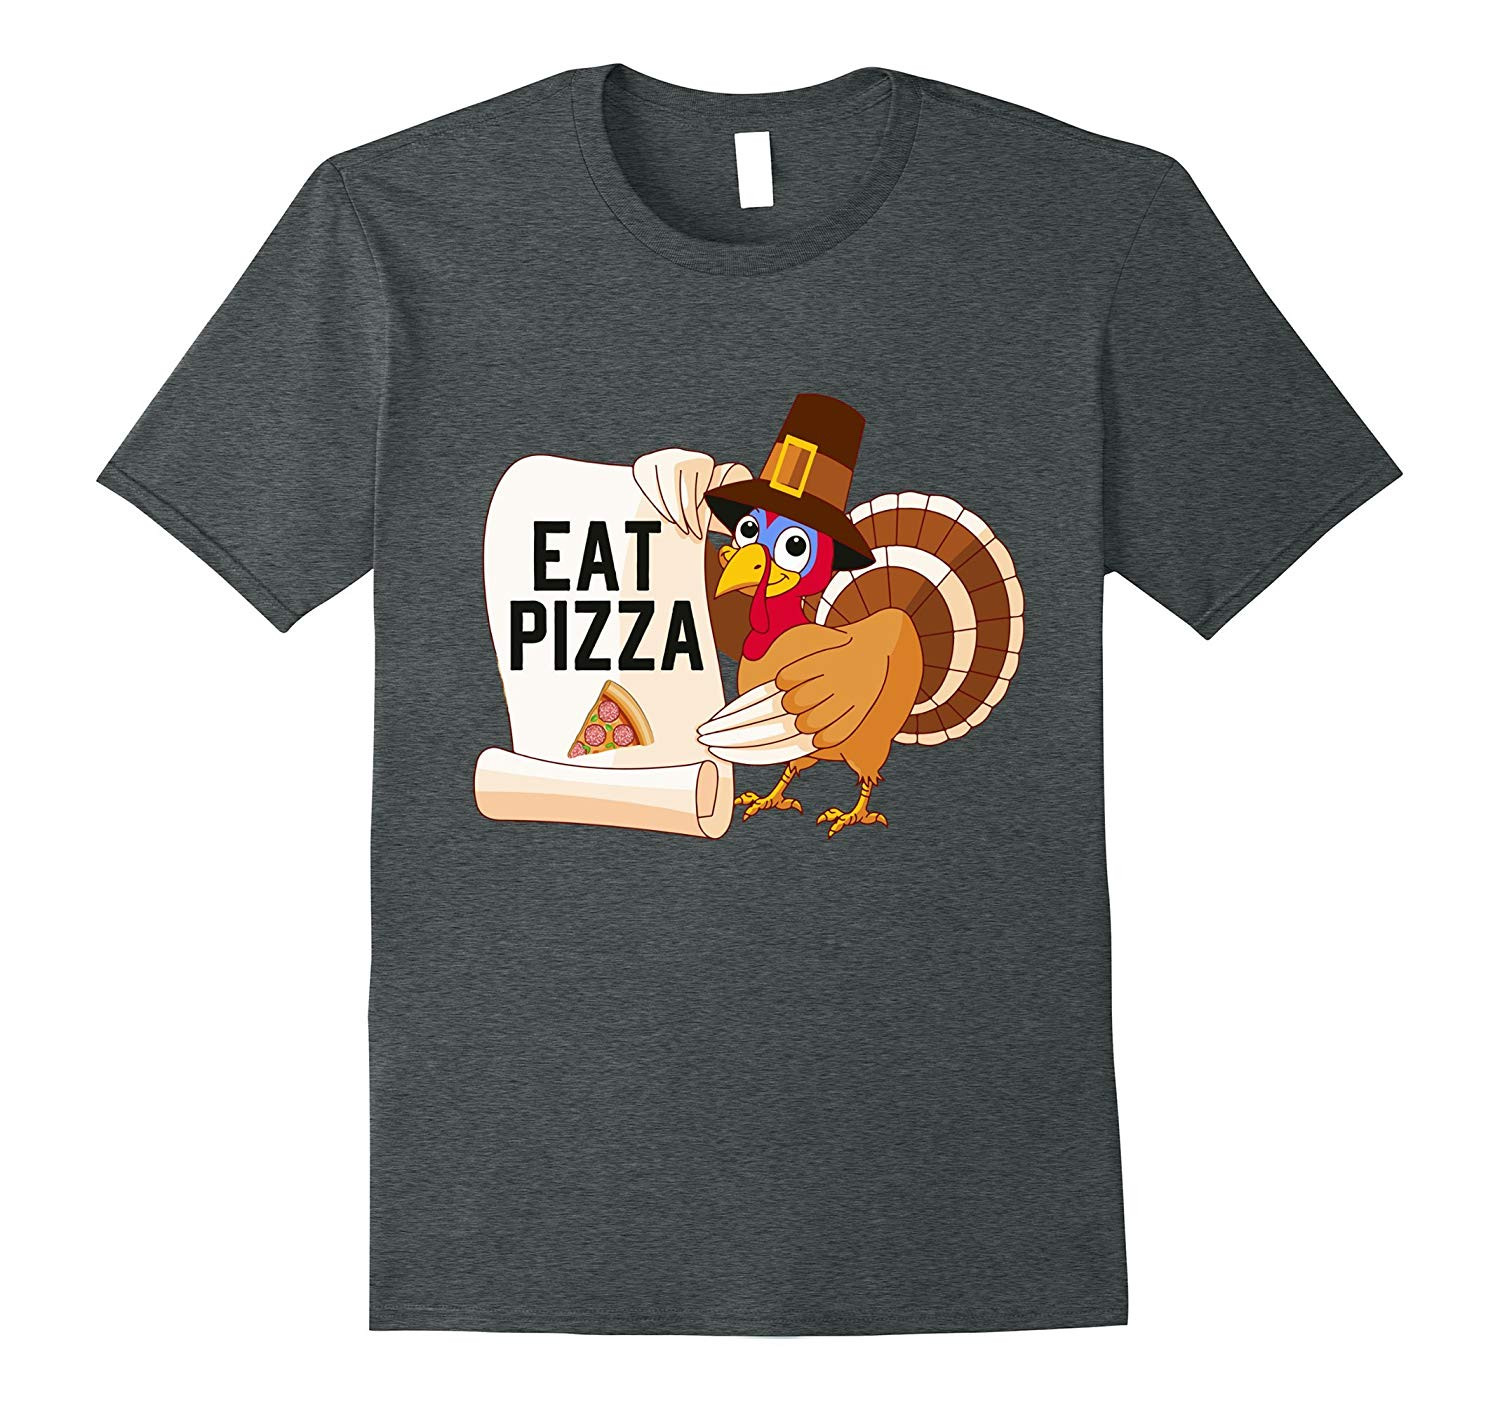 Turkey Shirts For Thanksgiving  Turkey Eat Pizza Shirt Funny Thanksgiving Shirts T Shirt